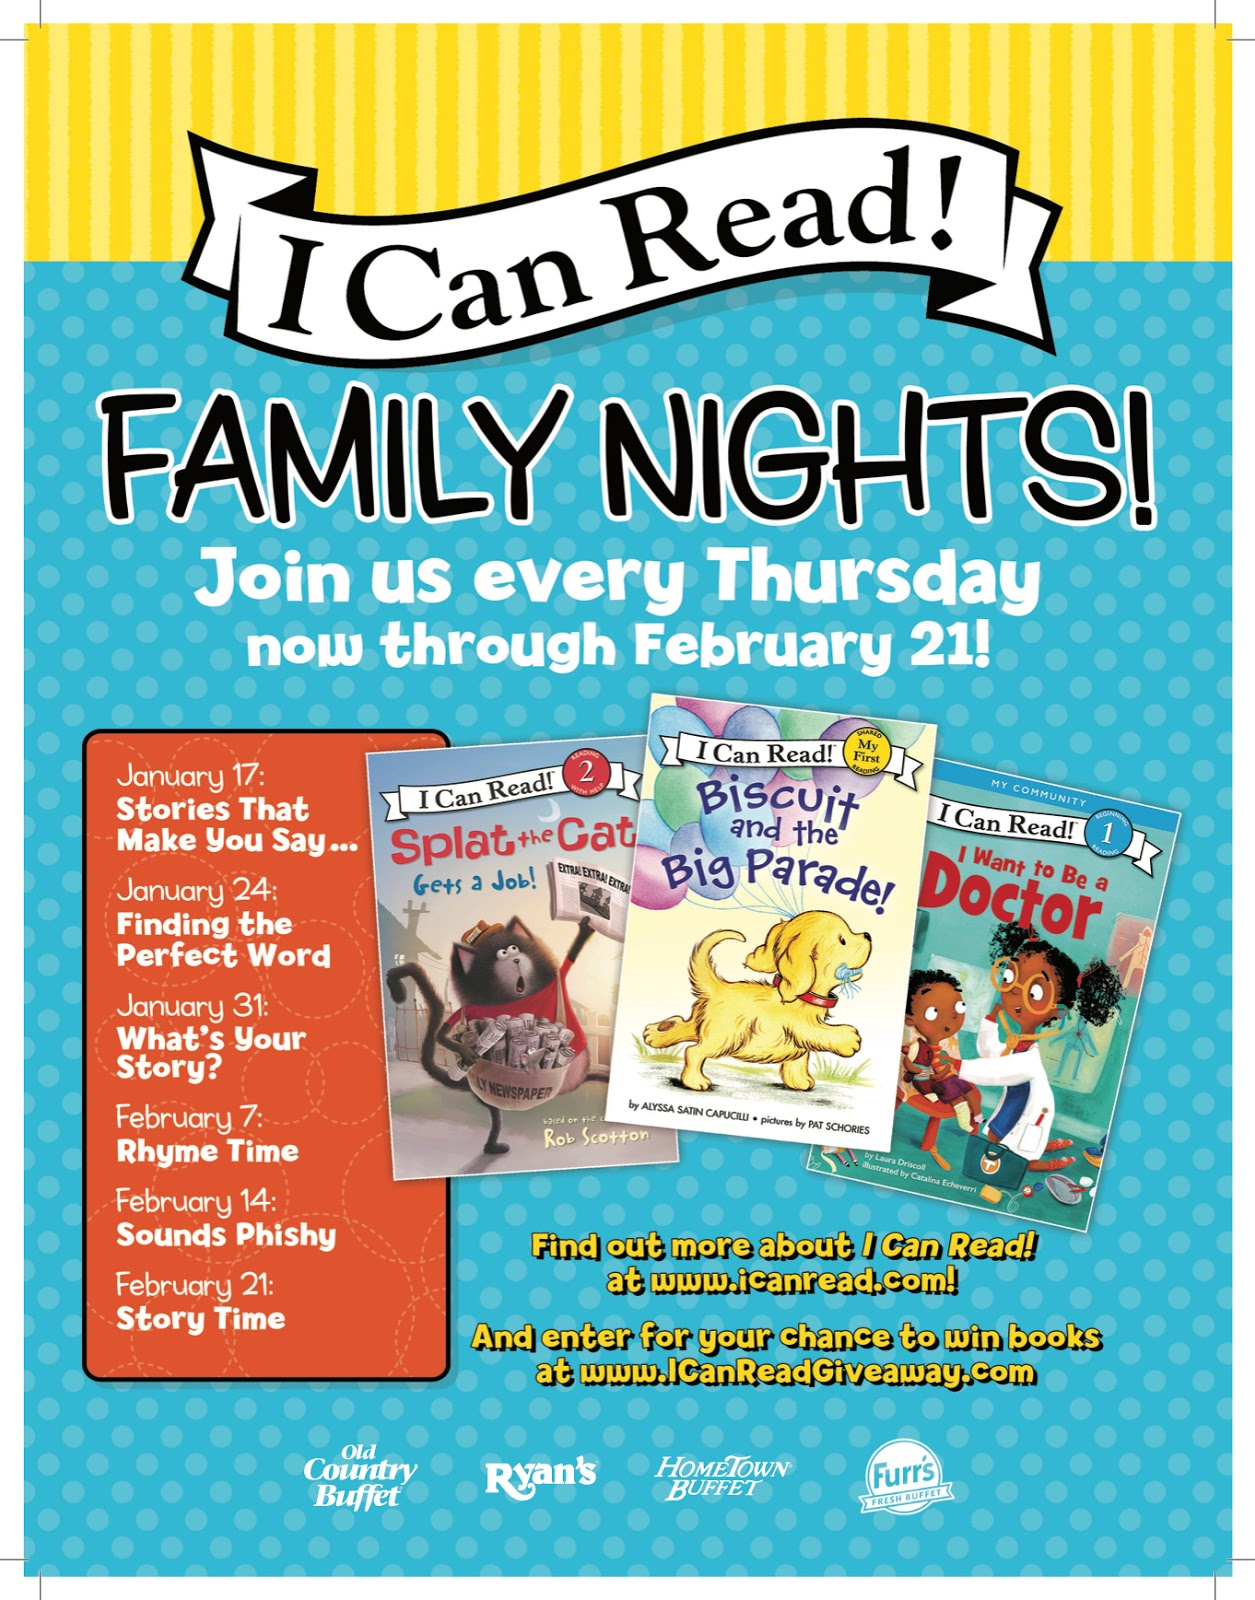 WIN 4 Ovation Restaurant Meal Passes and 3 I Can Read! Series Books!